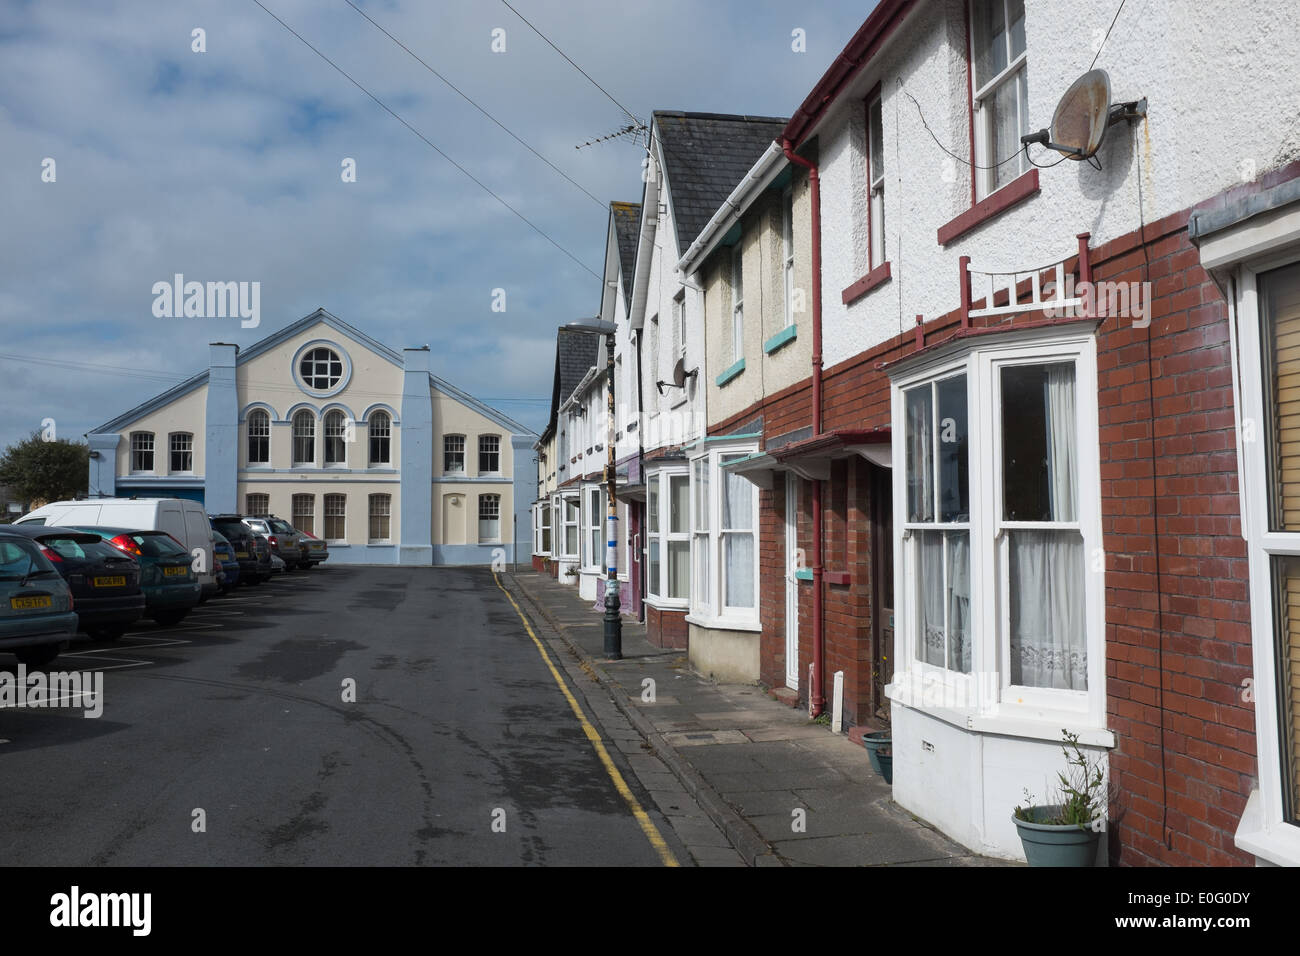 Glyndwr Road in Aberystwyth, due to be demolished if a development proposal is approved to build a Tesco store on the site. - Stock Image